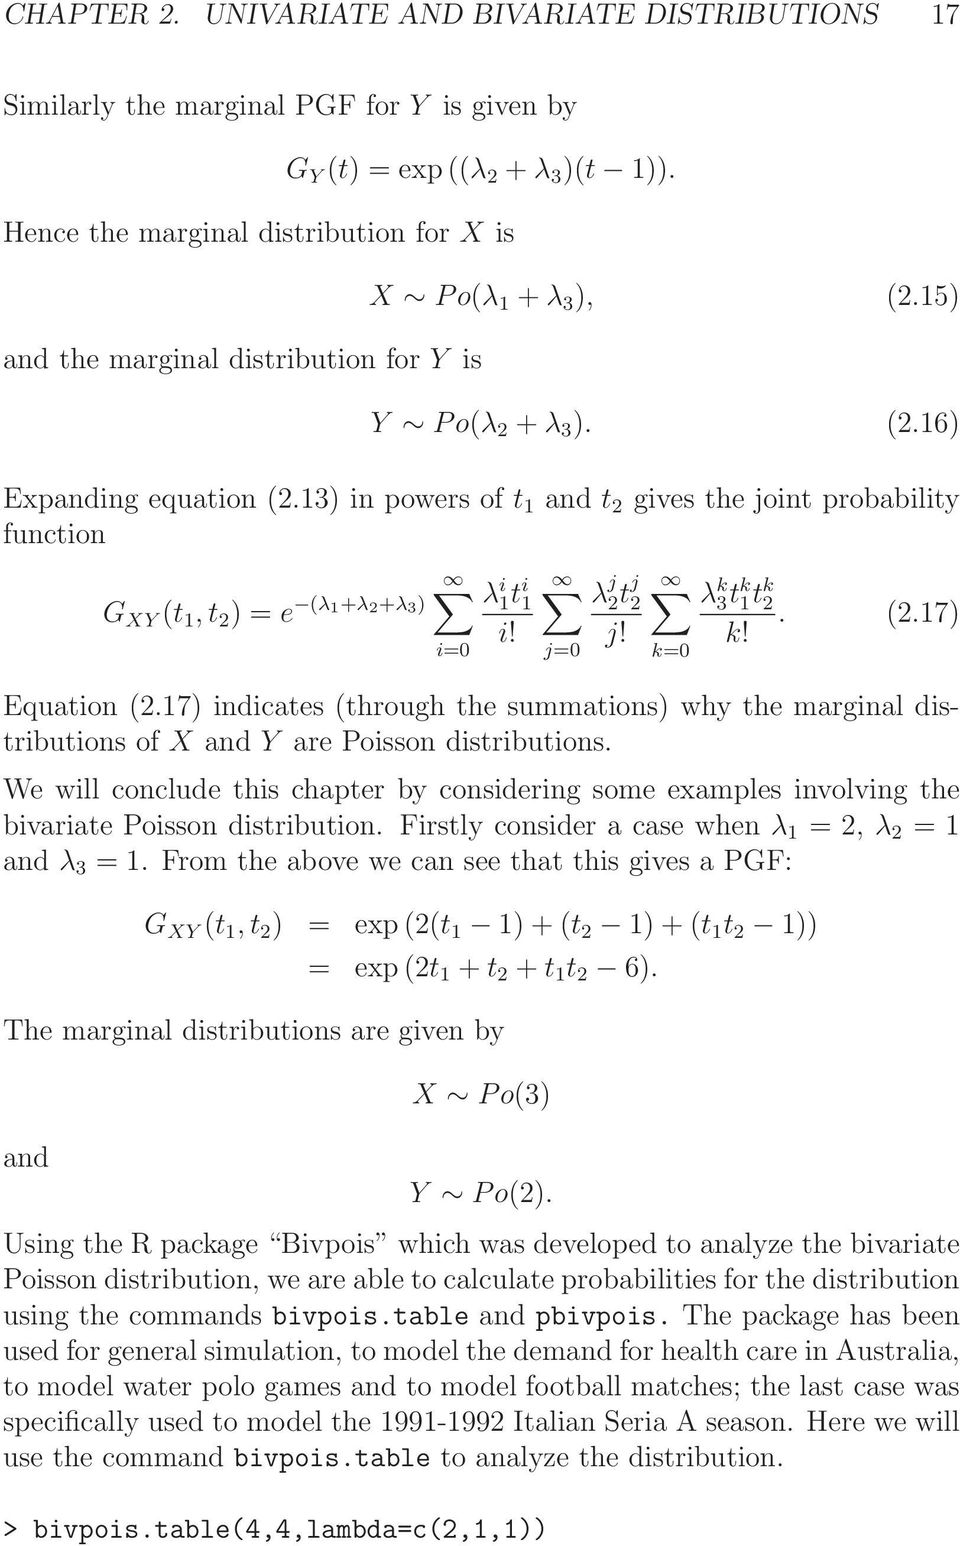 The Bivariate Poisson Distribution and its Applications to Football